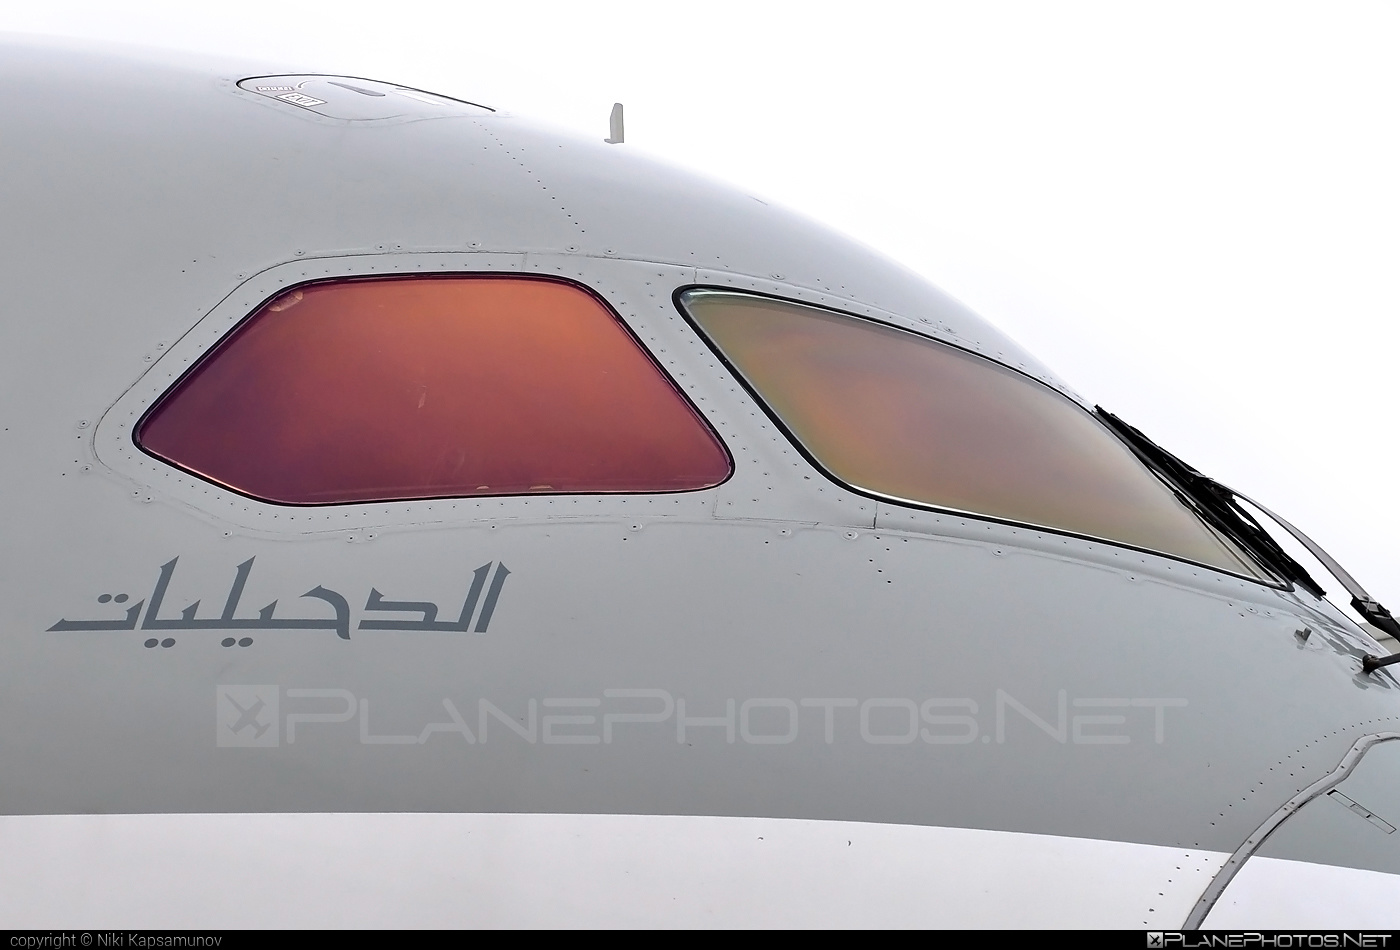 Boeing 787-8 Dreamliner - A7-BCM operated by Qatar Airways #b787 #boeing #boeing787 #dreamliner #qatarairways